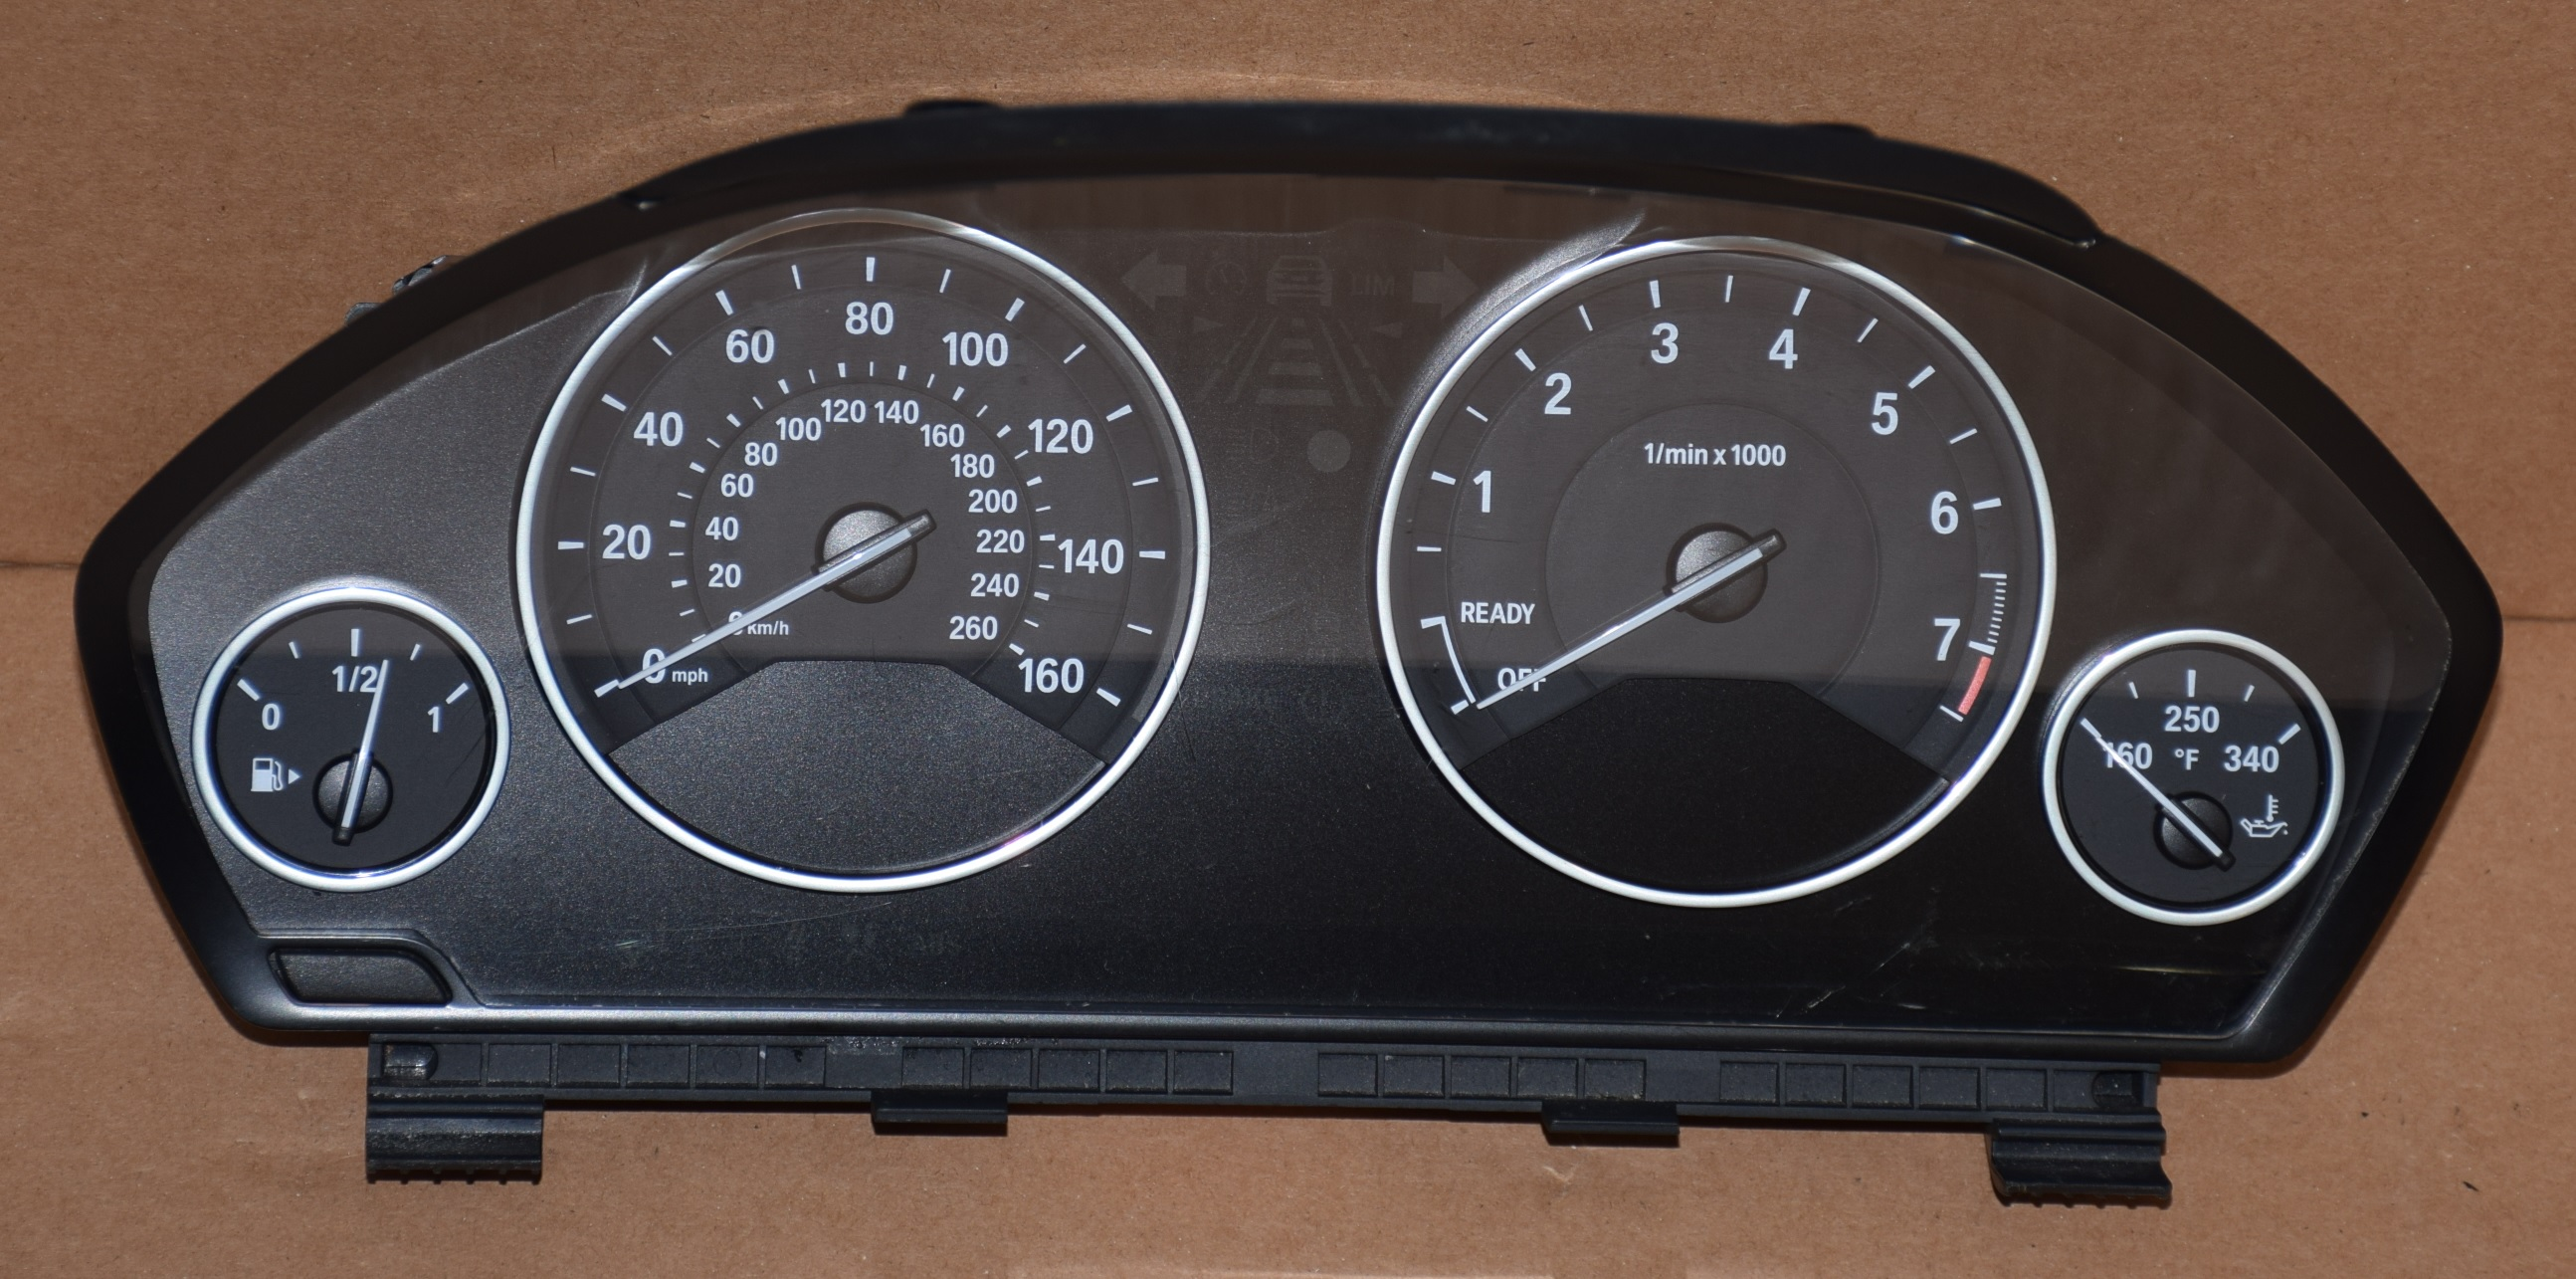 2013-2015 BMW 3 SERIES, 316I, 328I, F30, F80 USED DASHBOARD INSTRUMENT  CLUSTER FOR SALE (MPH)